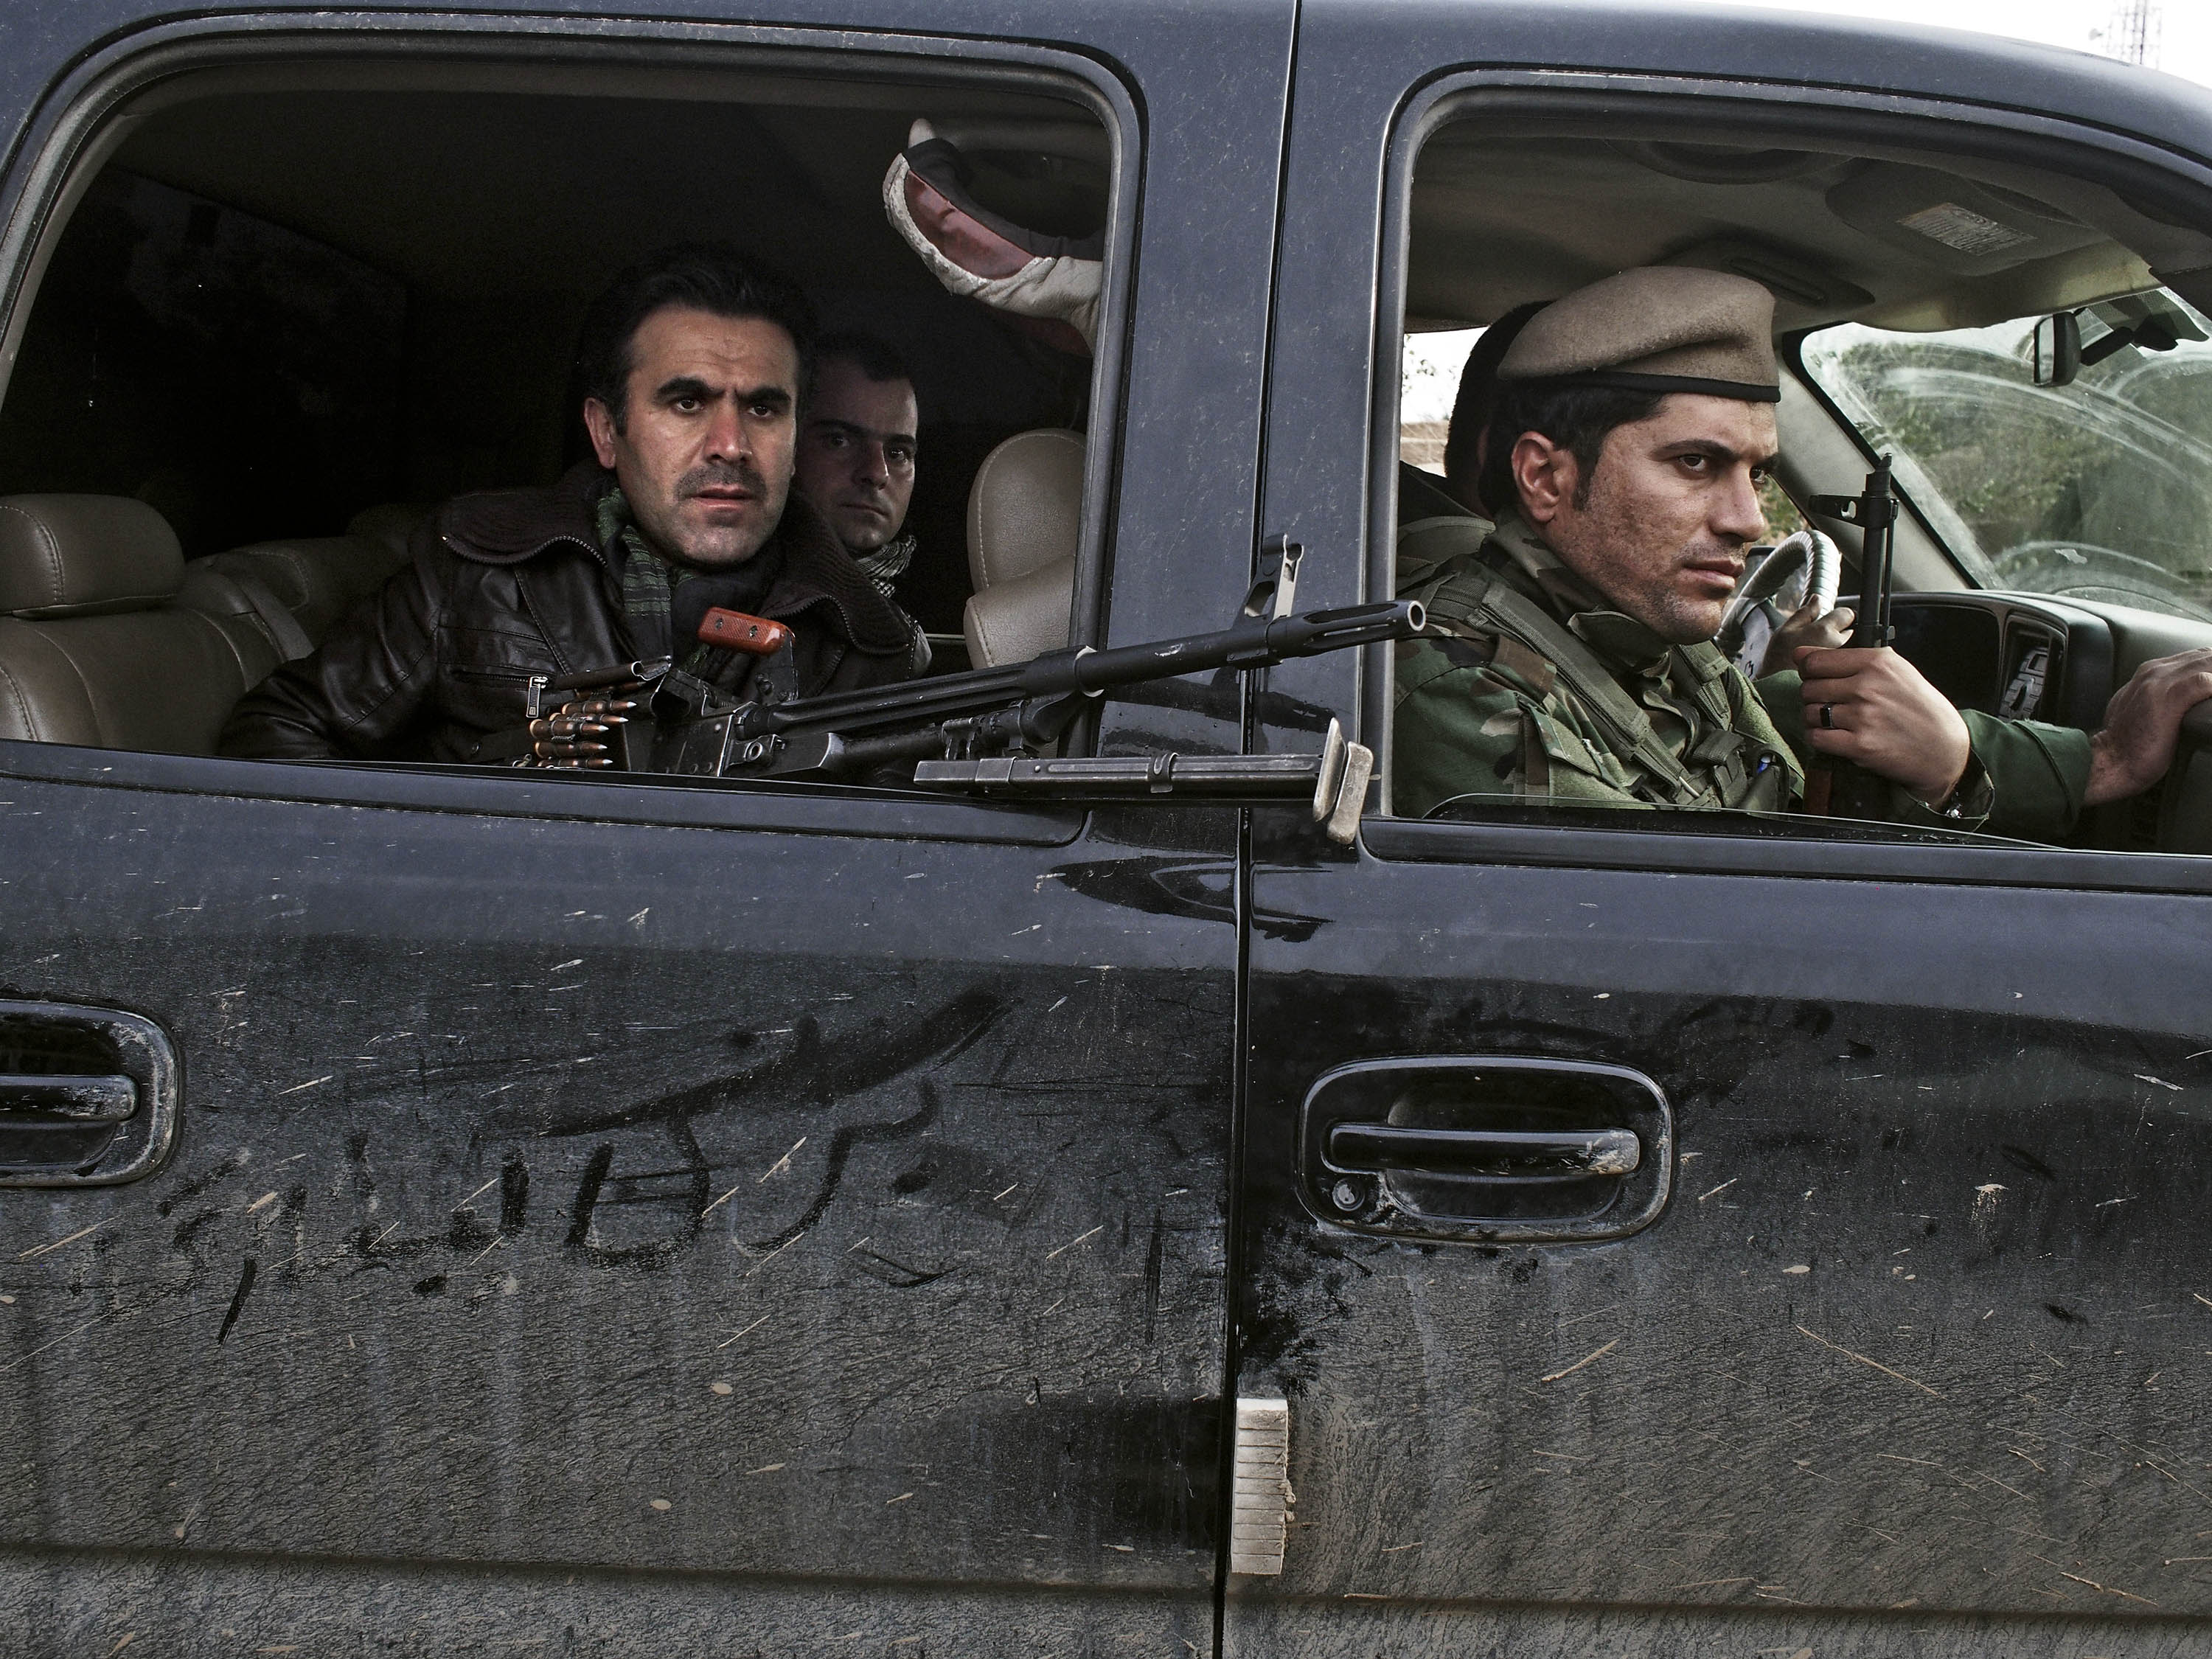 Counterattack: Kurdish soldiers drive through an Iraqi village in December after taking it back from ISIS forces